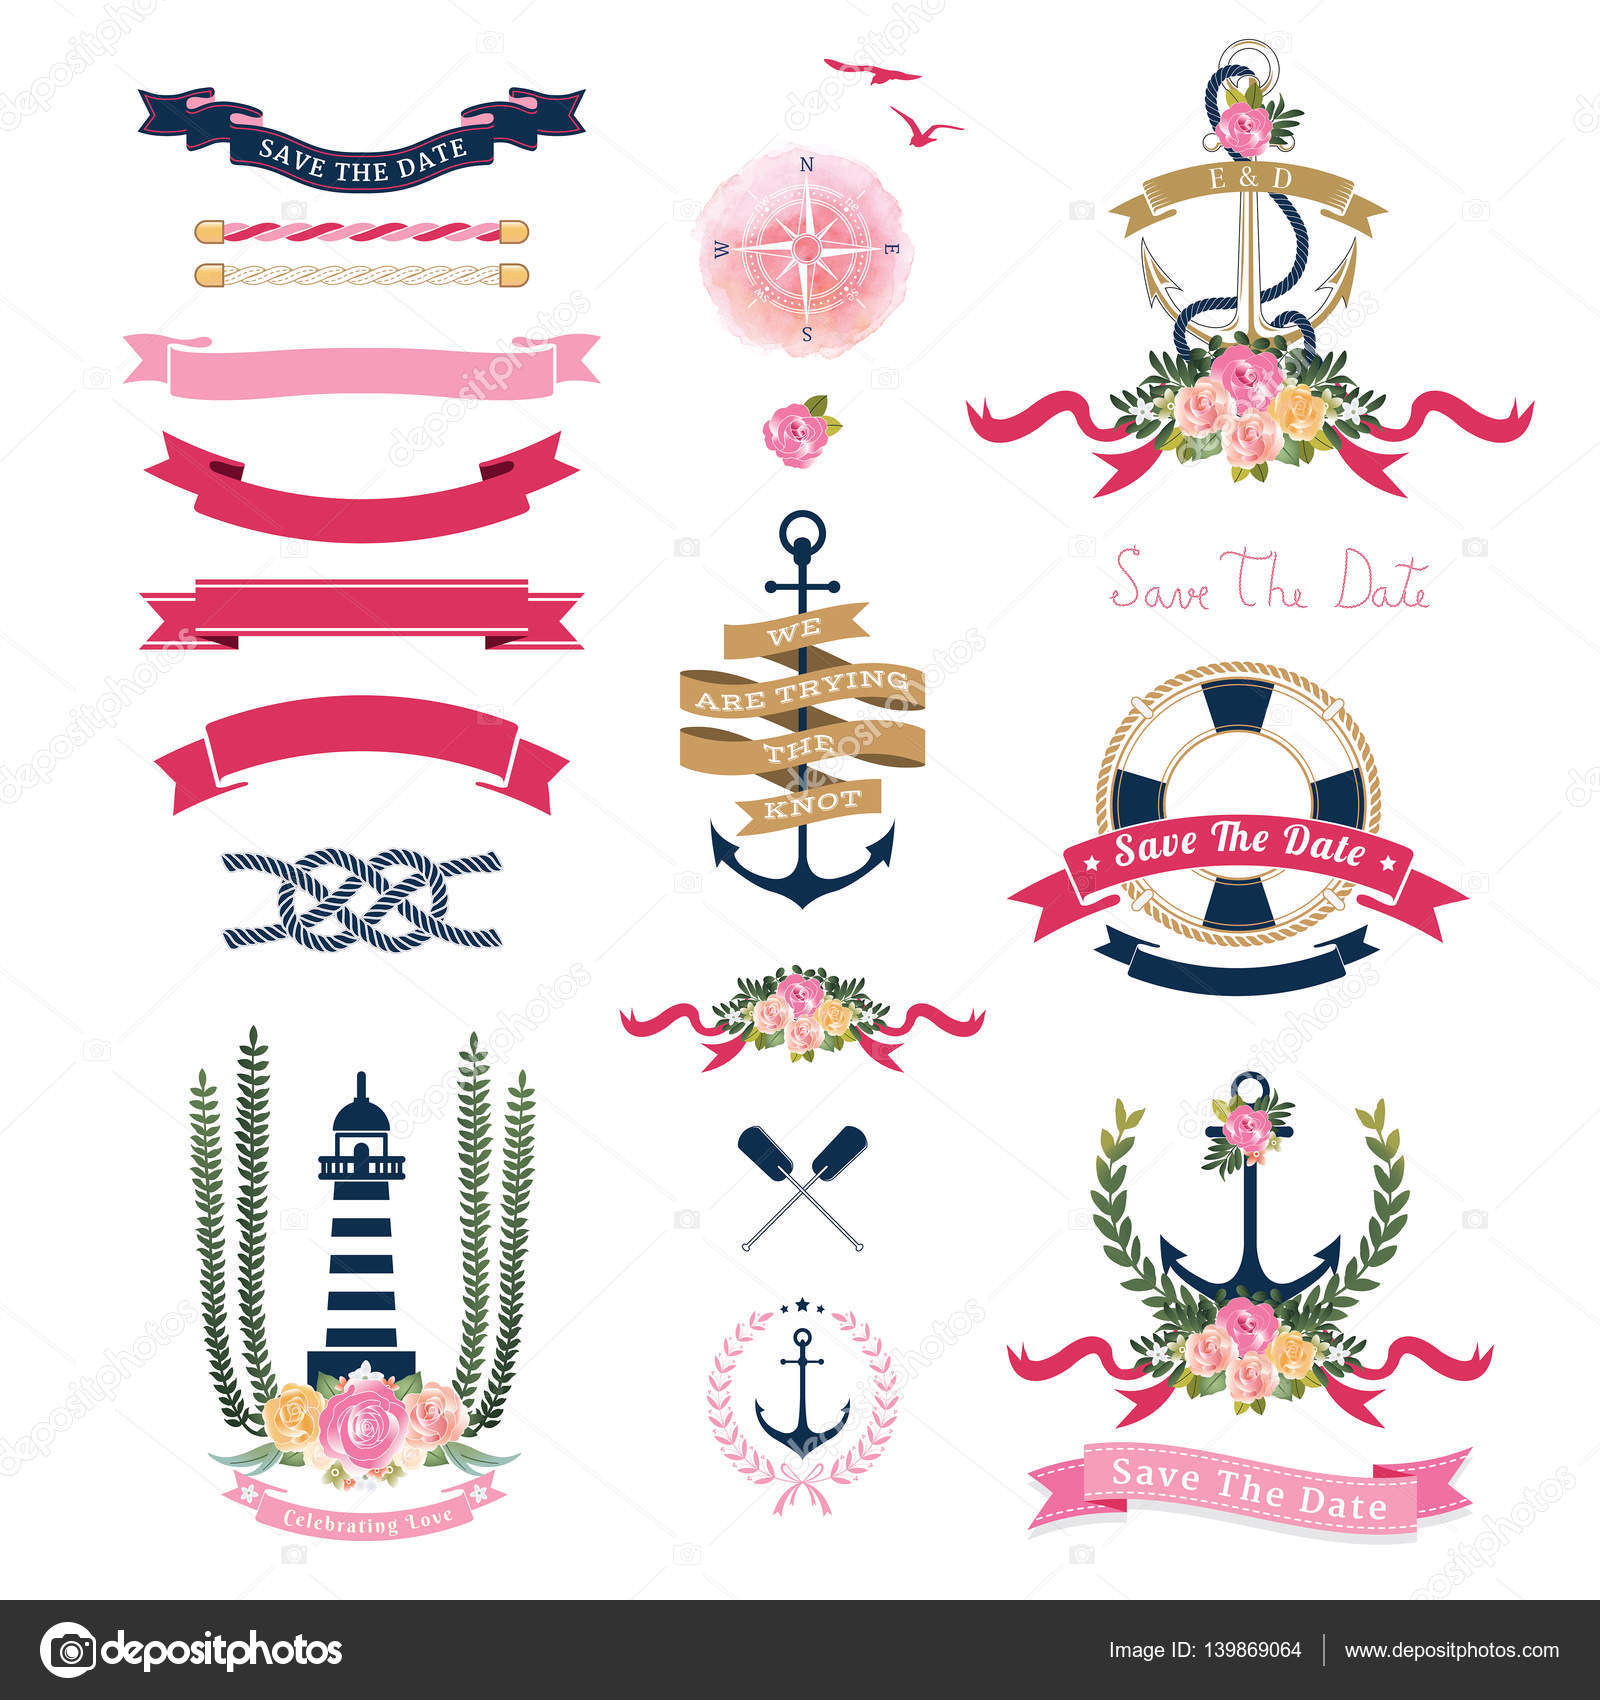 Anchor ornaments - Nautical Wedding Theme With Floral And Anchor Ornaments Stock Vector 139869064